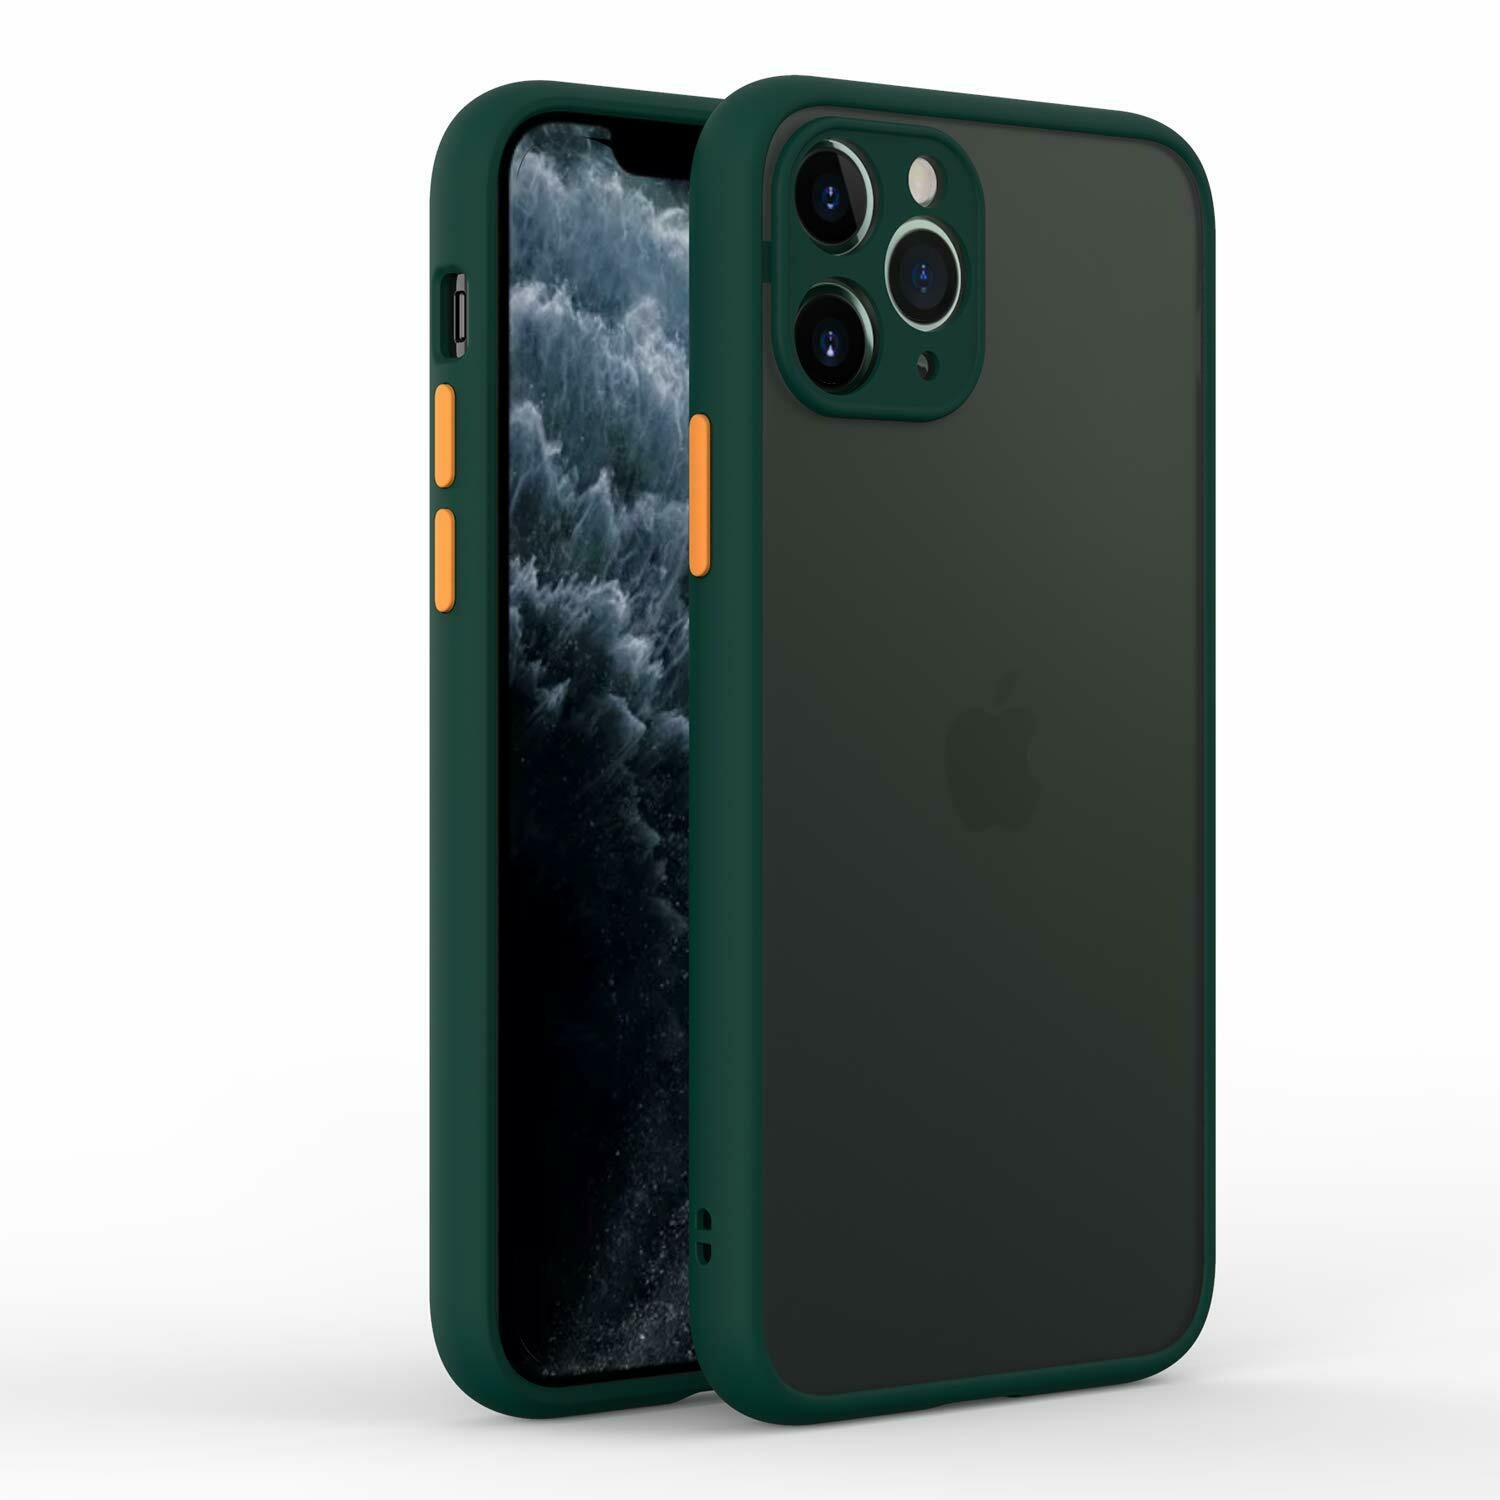 iPhone 11 Pro Smoke Translucent Shock Proof Smooth Rubberized Matte Hard Back Case Cover with Camera Protection (Dark Green)